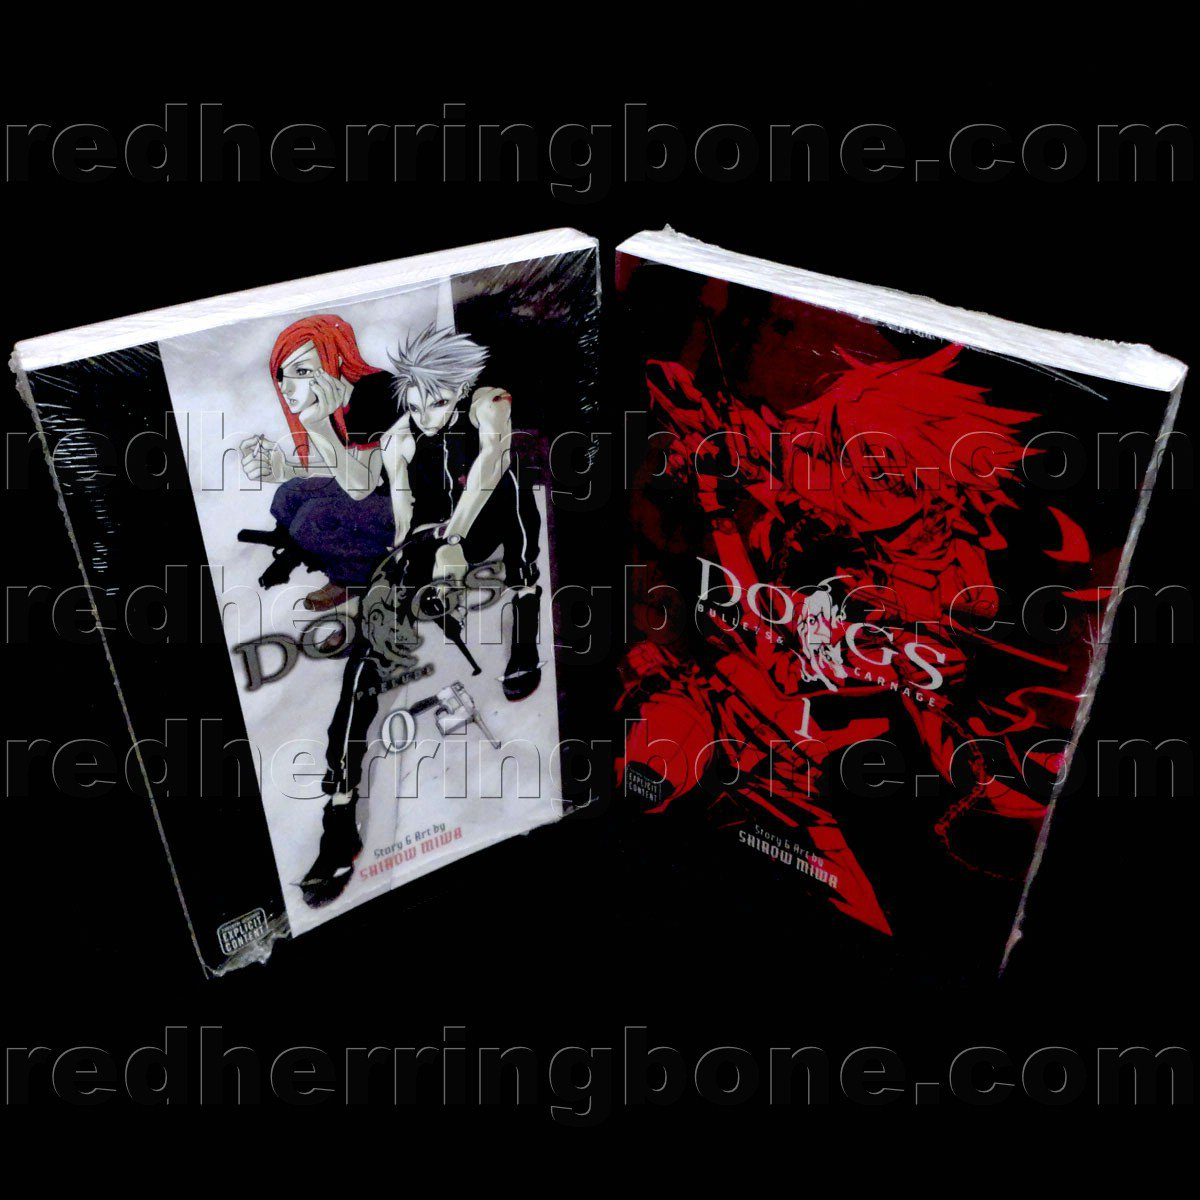 Dogs: Prelude, Vol. 0 and Dogs: Bullets & Carnage, Vol. 1 (set includes Volume 0 & 1) NEW